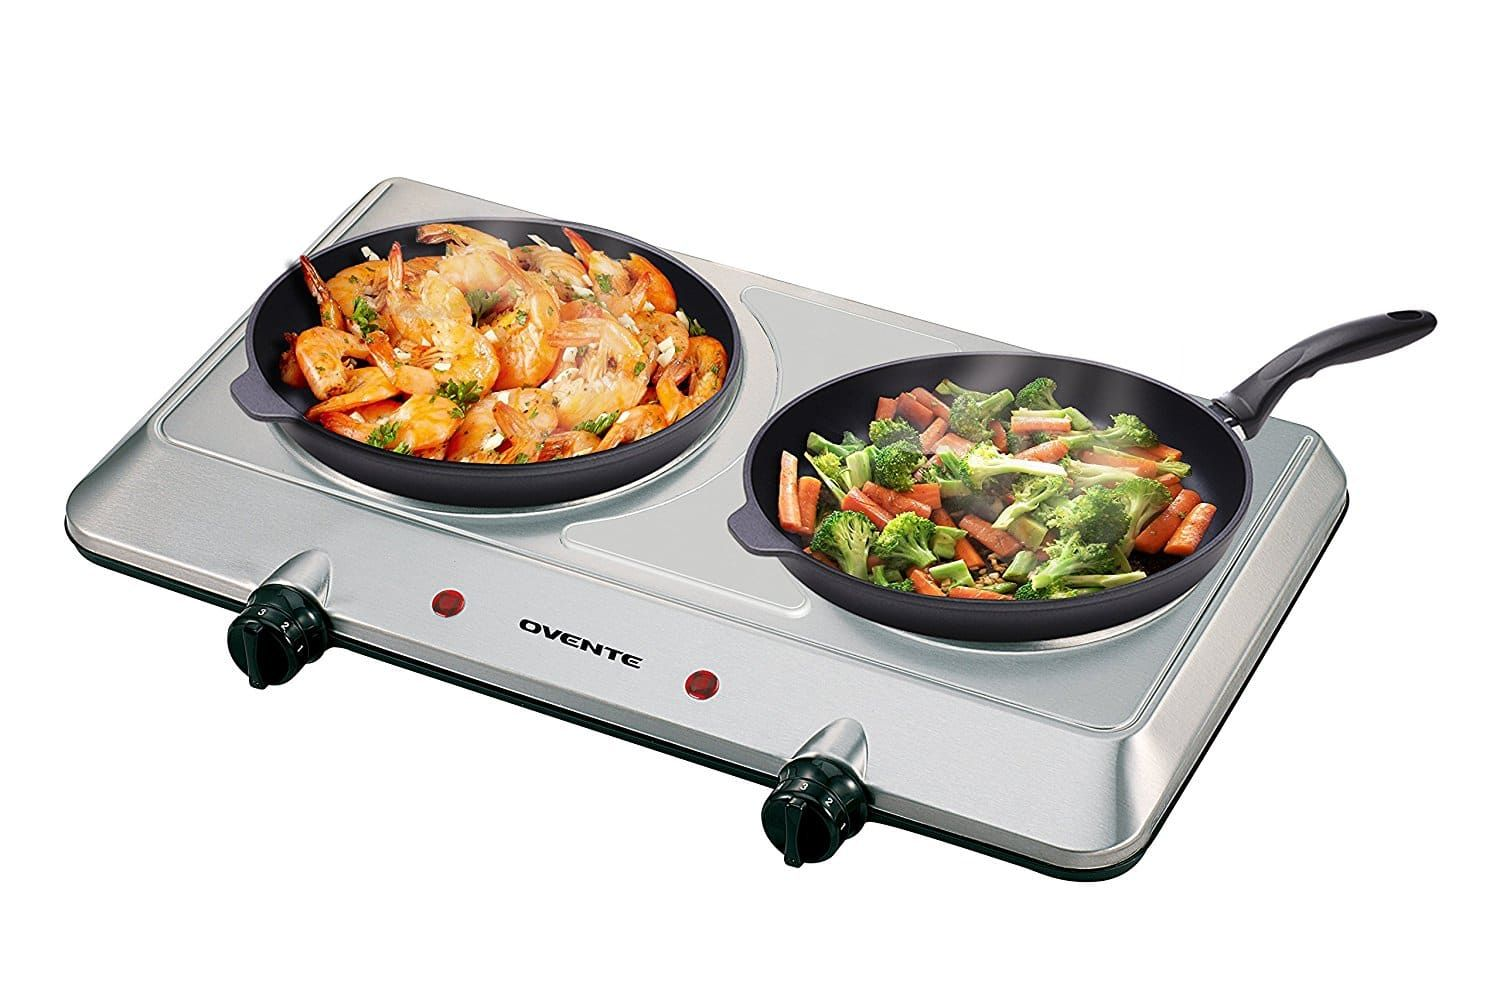 Top 10 Best Hot Plates In 2020 Cooking Appliances Hot Plates